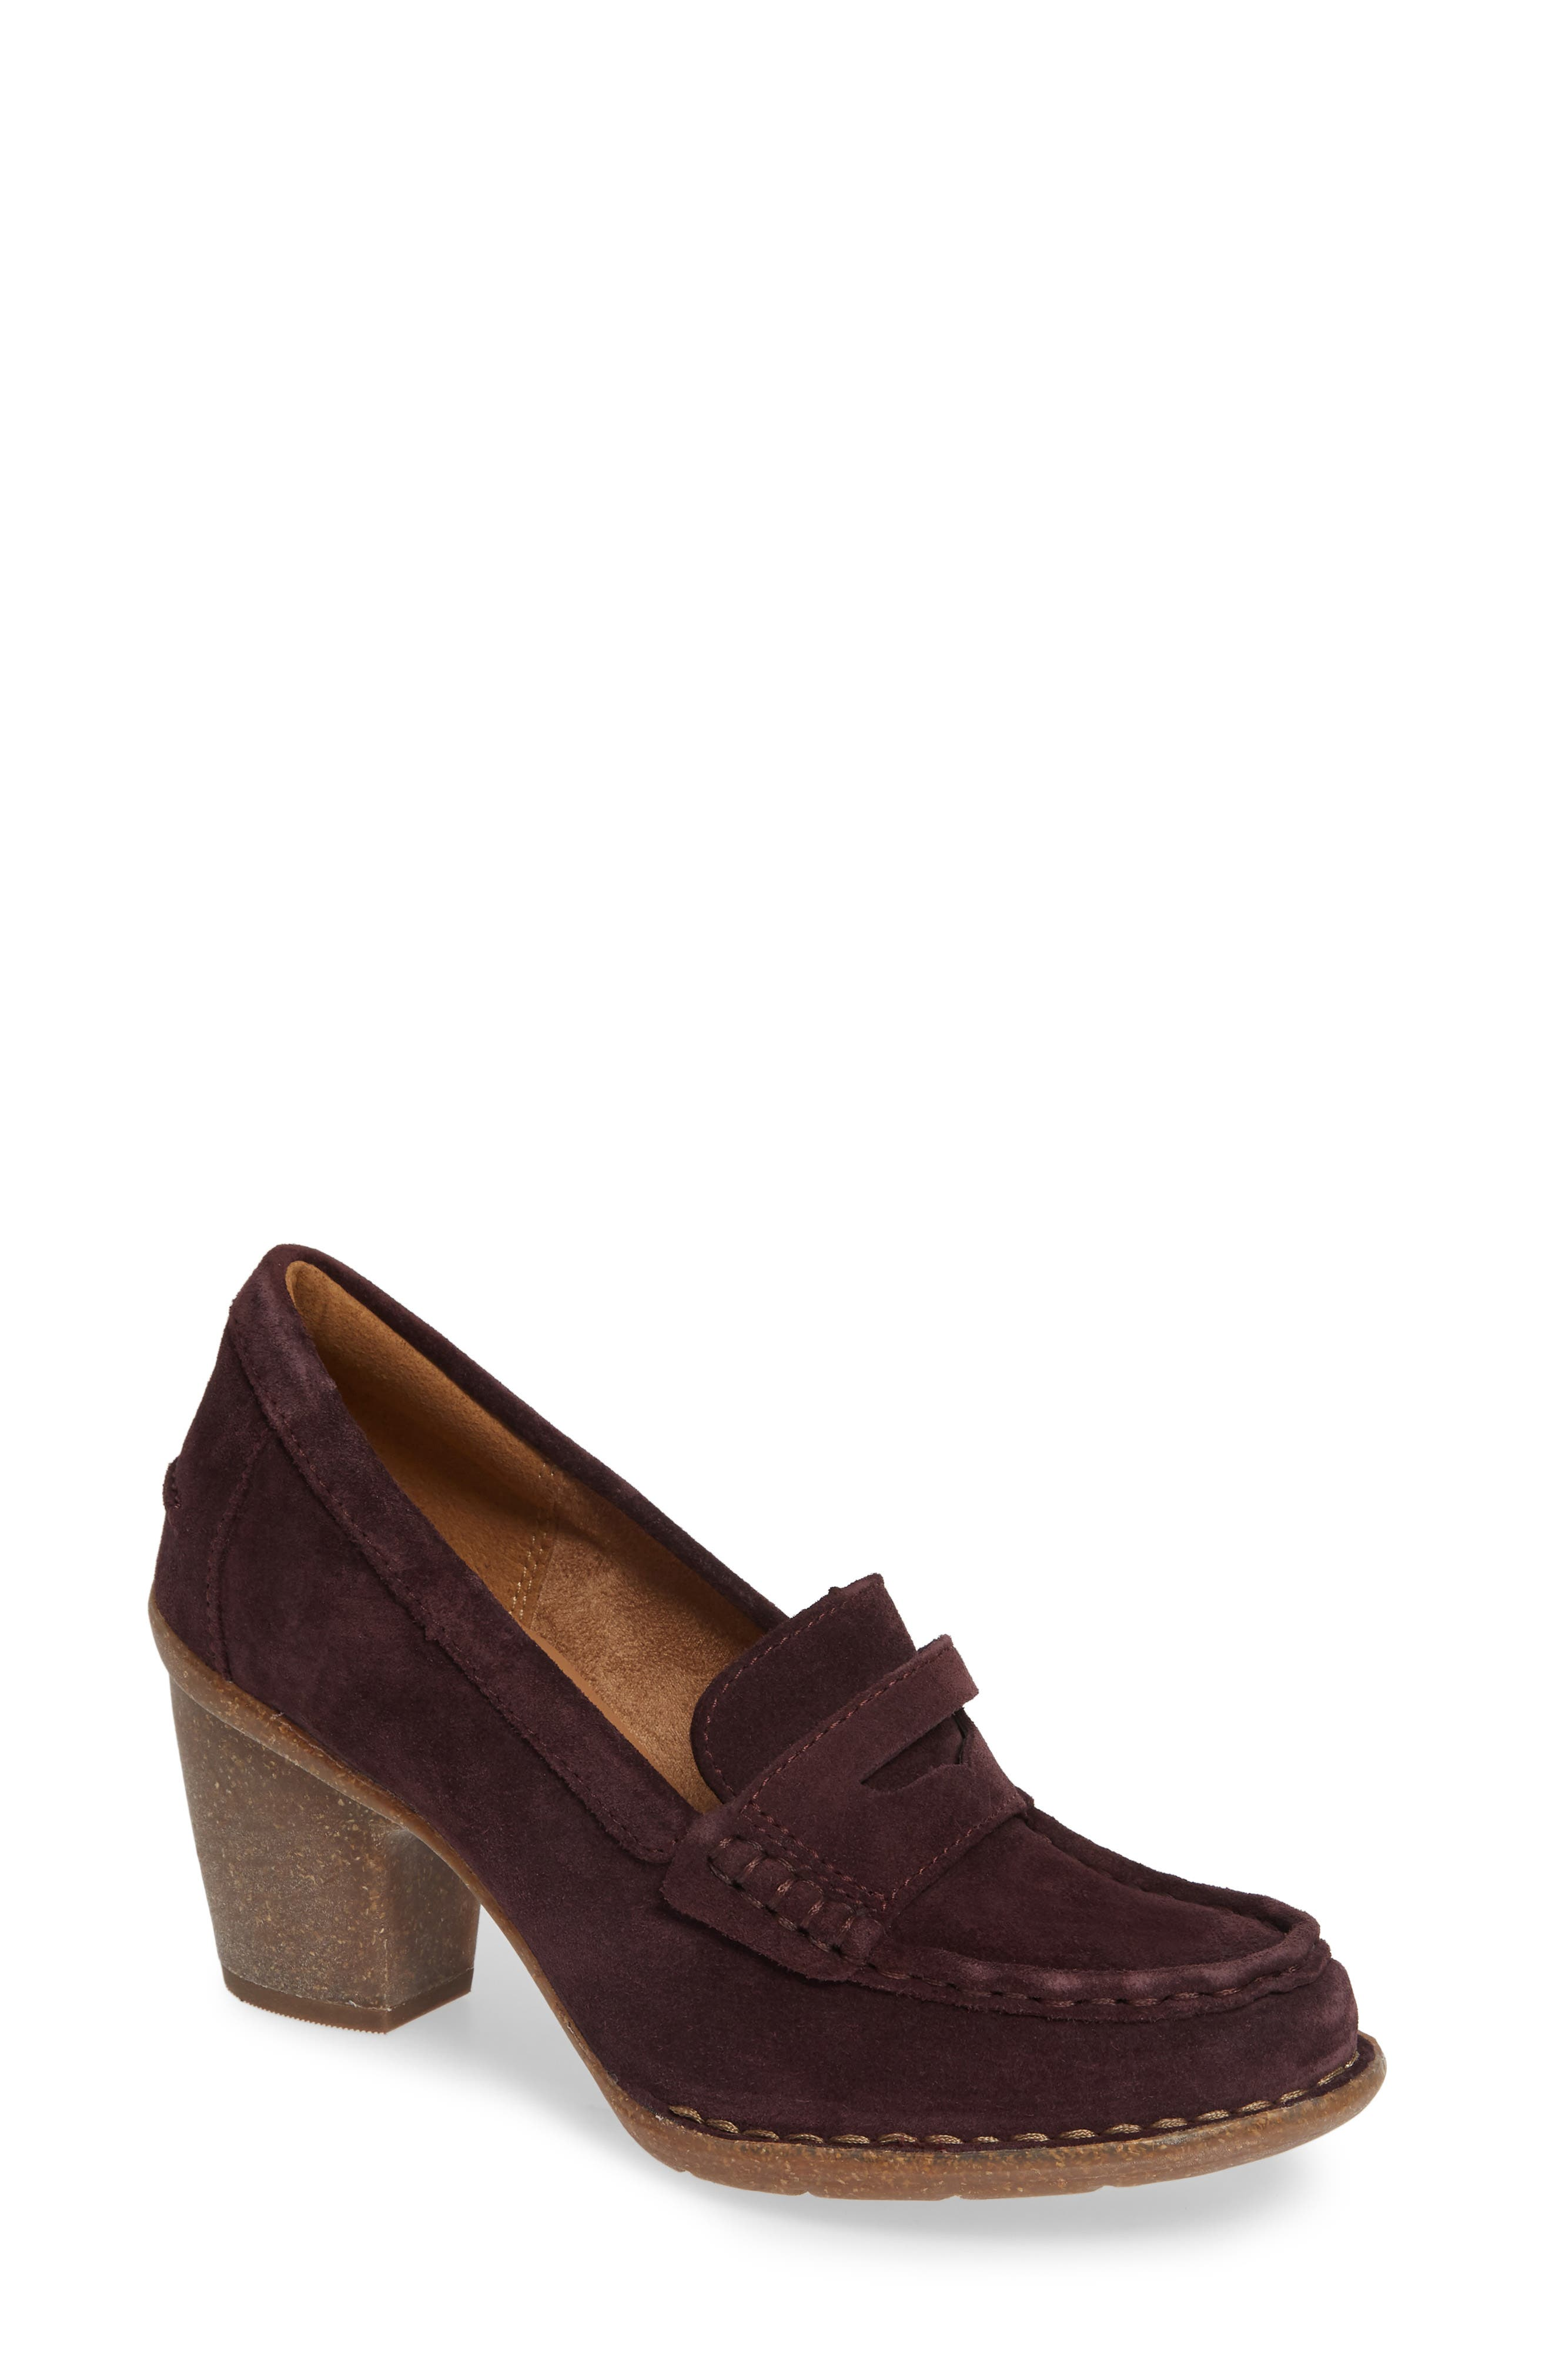 Carletta Belle Pump,                         Main,                         color, BURGUNDY SUEDE